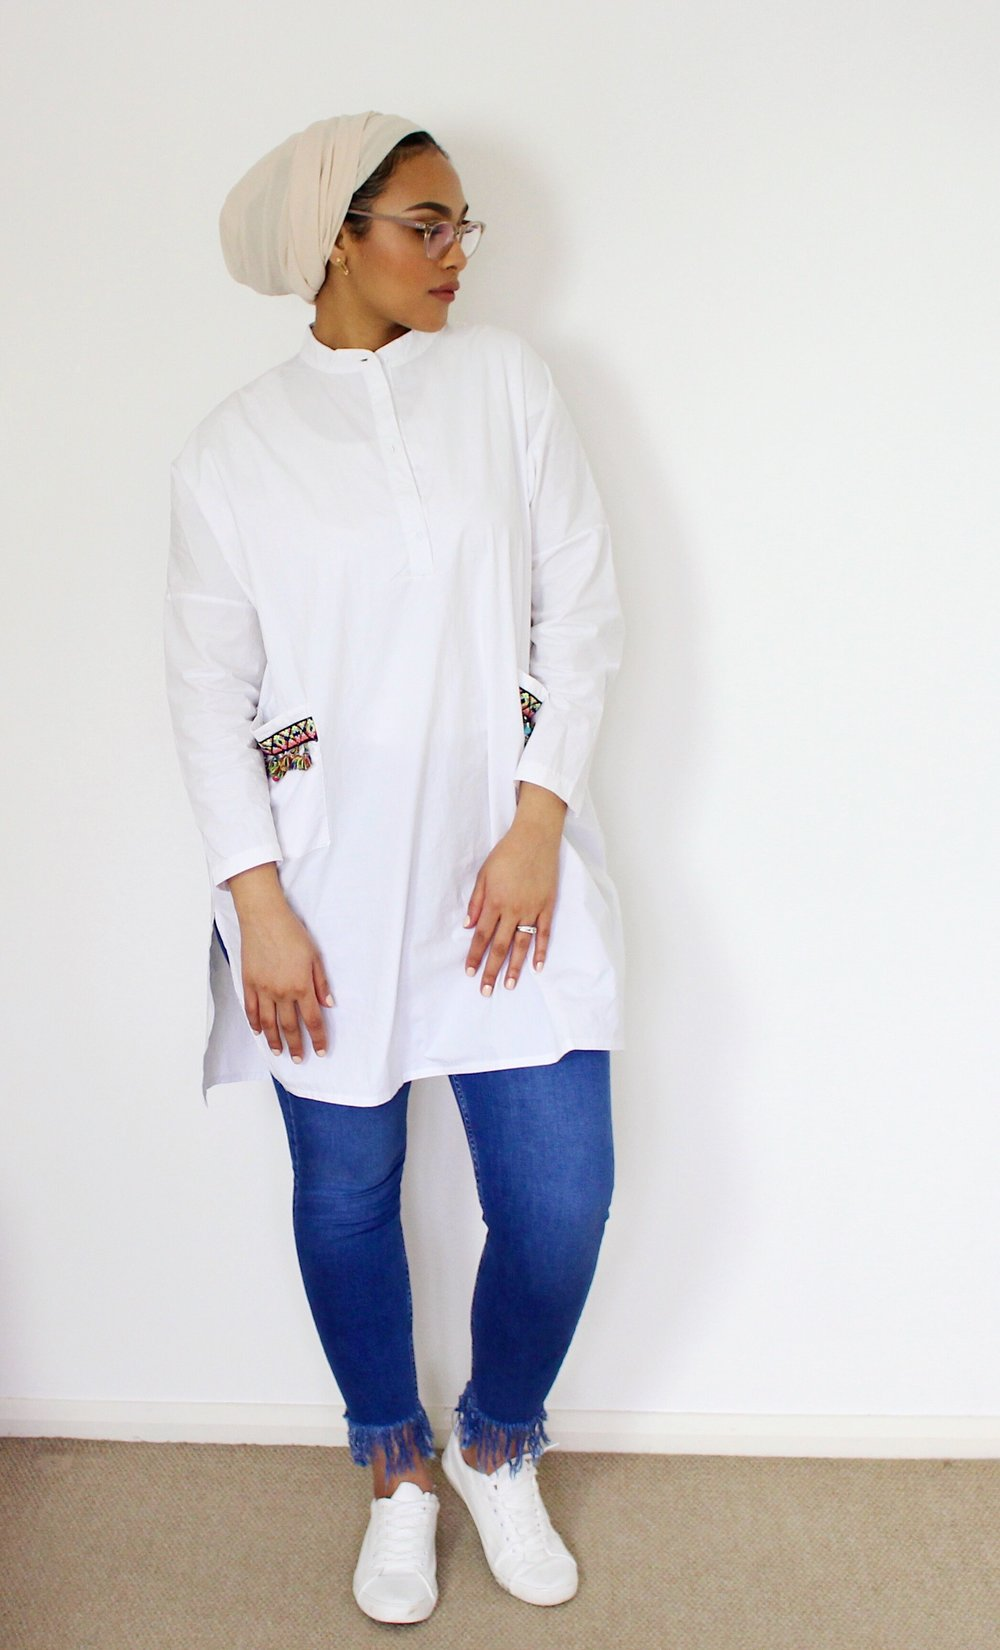 I LOVE the look of oversized shirts with some white sneakers. Top it off with some denim and you really can't go wrong! How cute are these Frayed Jeans! I think its super cute with the Pocket Pom Pom Detailing on the shirt! Also, Keeping this outfit looking fresh with our ivory scarf LANAI!